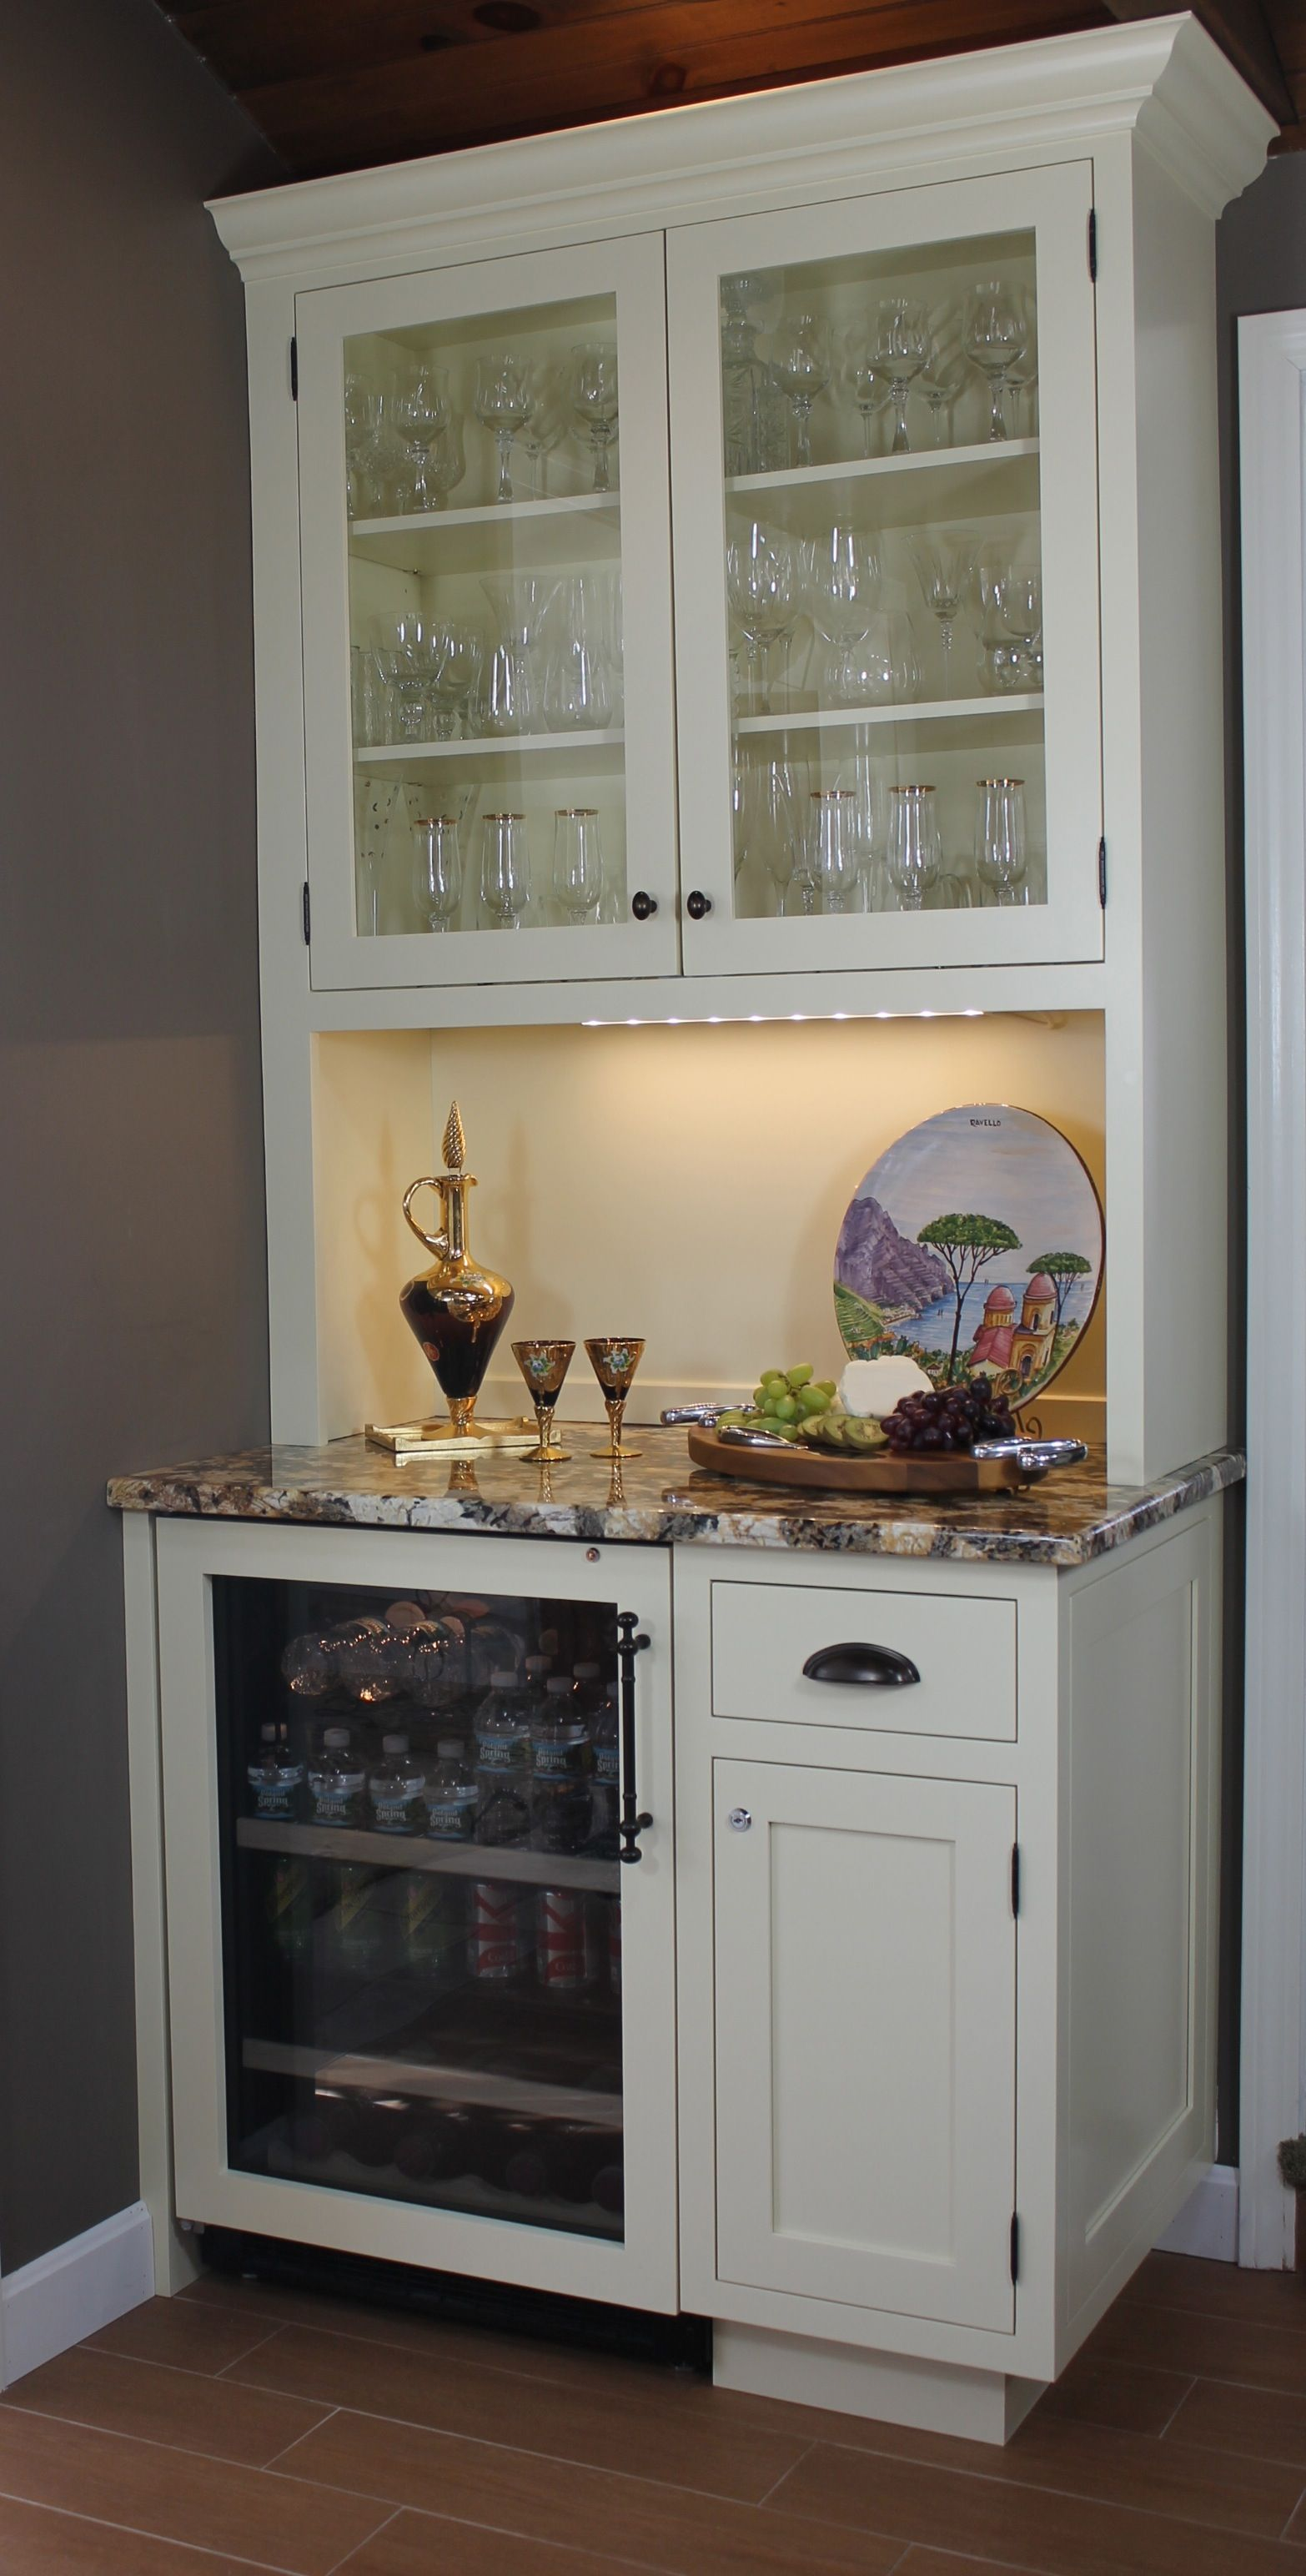 Kitchen Desk Converted To Wine Bar Google Search Home